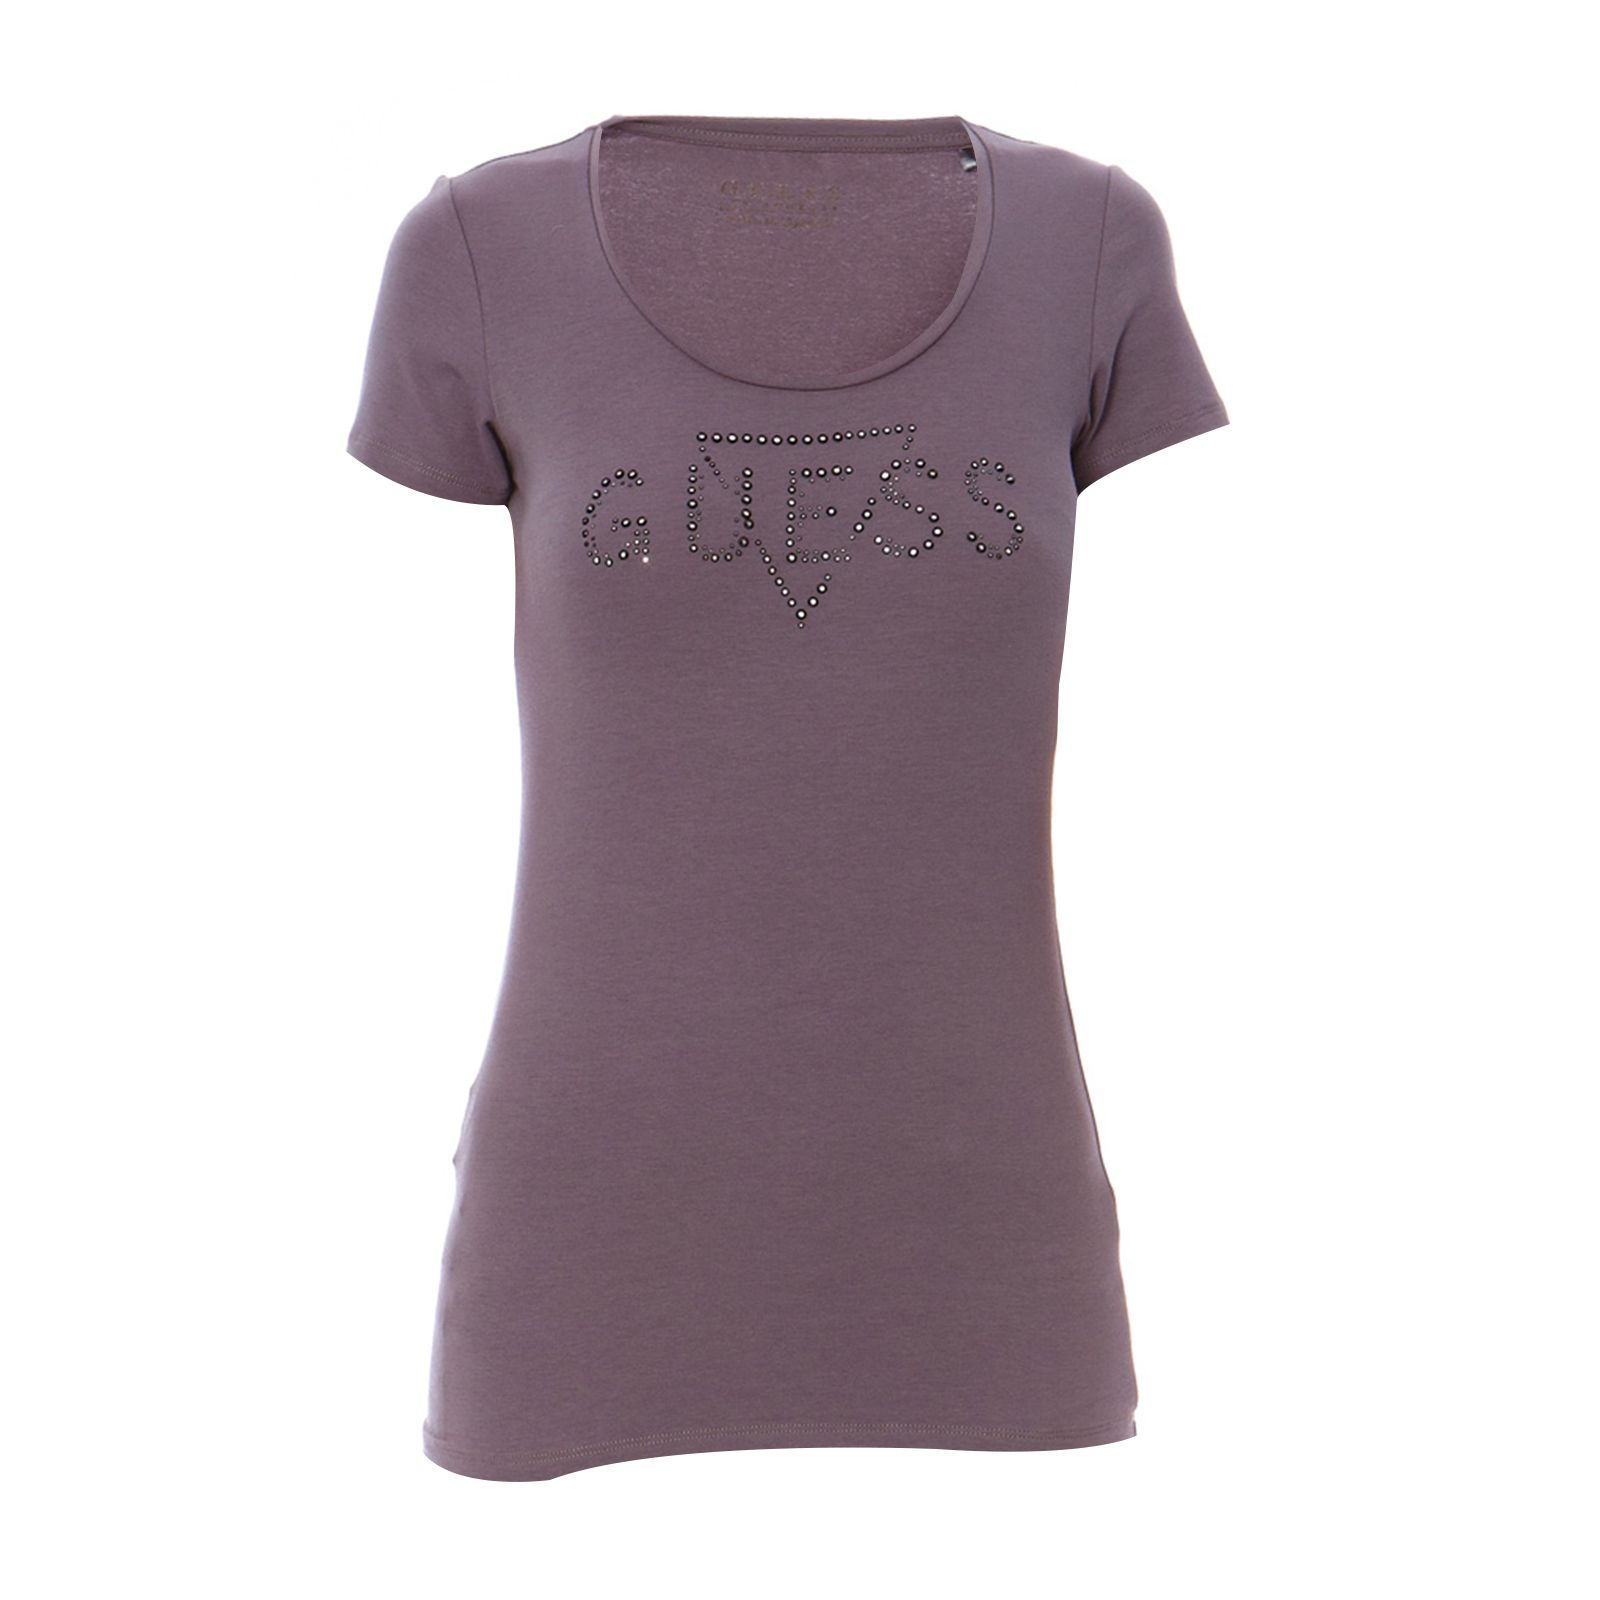 Guess :  T-shirt anthracite